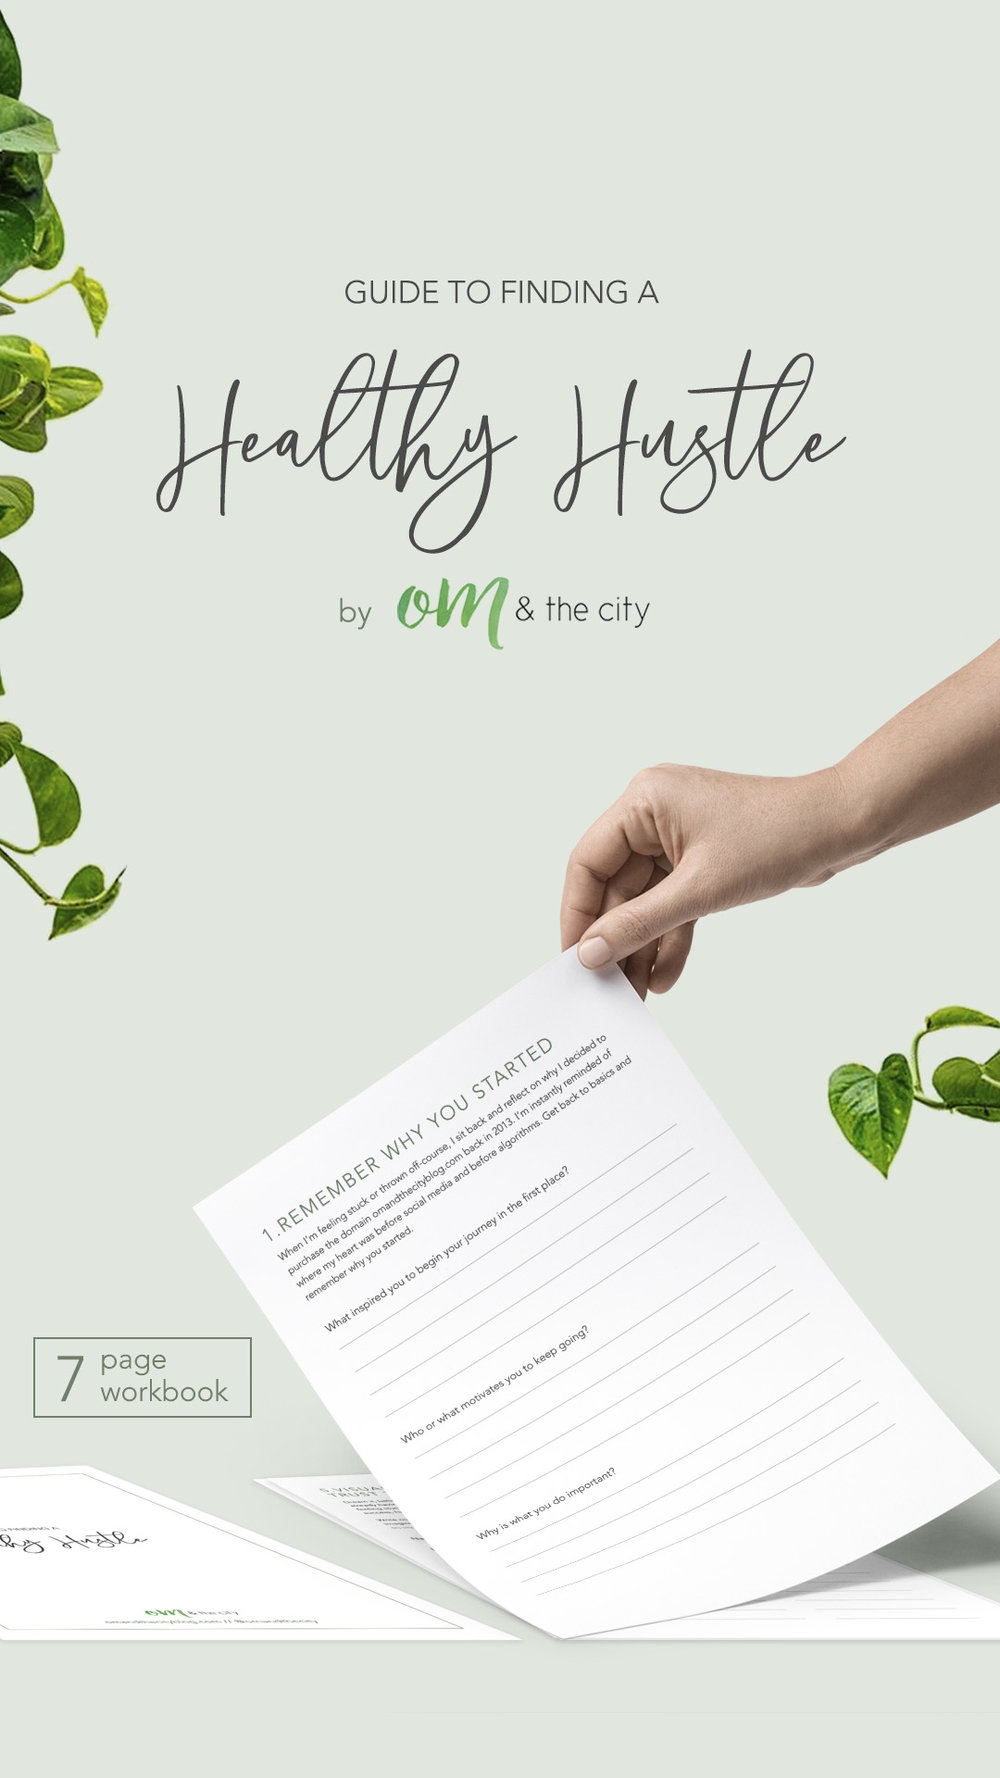 Finding a healthy hustle | Learn how to design your own healthy hustle so you can create abundance while doing what you love and practicing good self-care – FREE download included. | Om & the City Blog #OmAndTheCity #entrepreneur #healthyhustle #worklifebalance #girlboss #solopreneur #lifegoals #lifestyledesign #selfcare #abundance